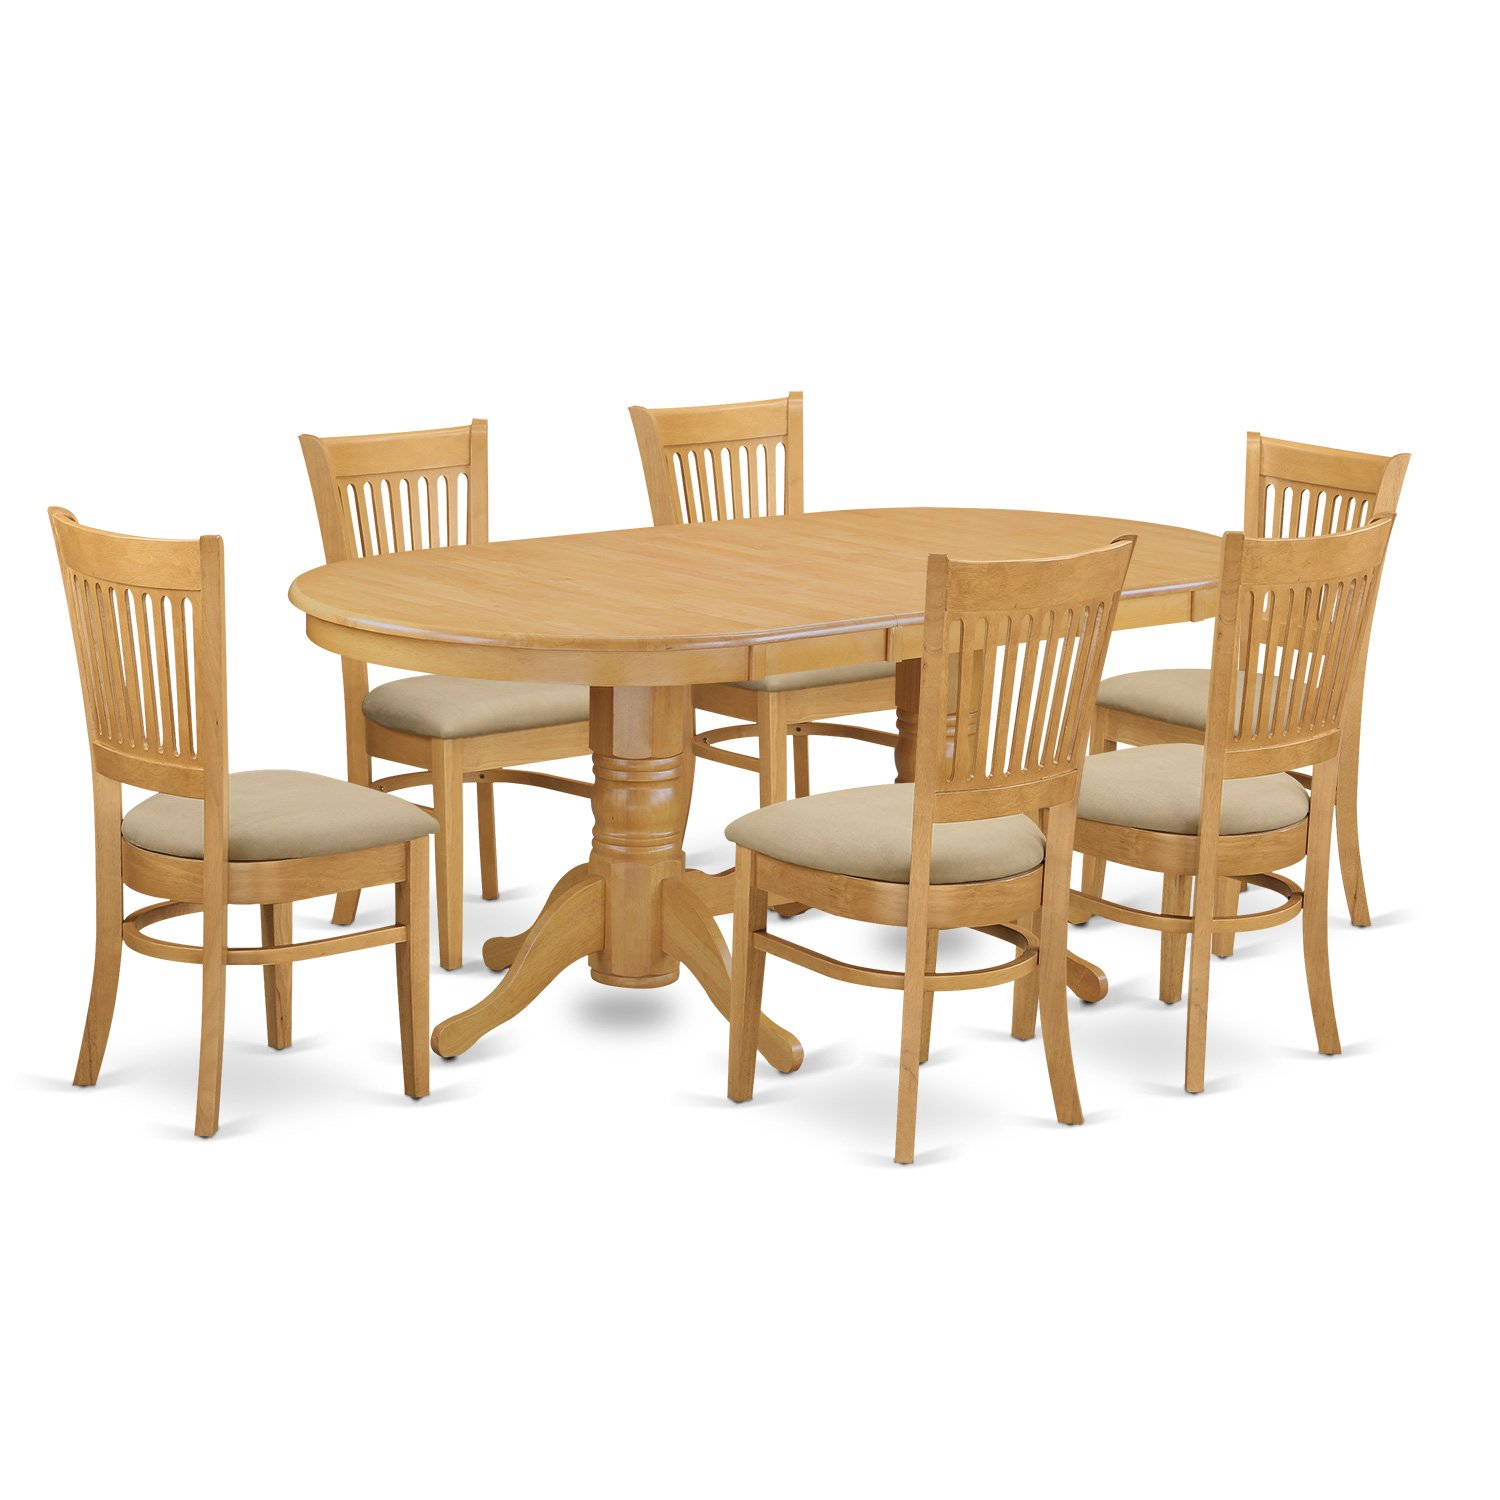 Amazon.com: East West Furniture VANC7-OAK-C 7-Piece Dining Table ...